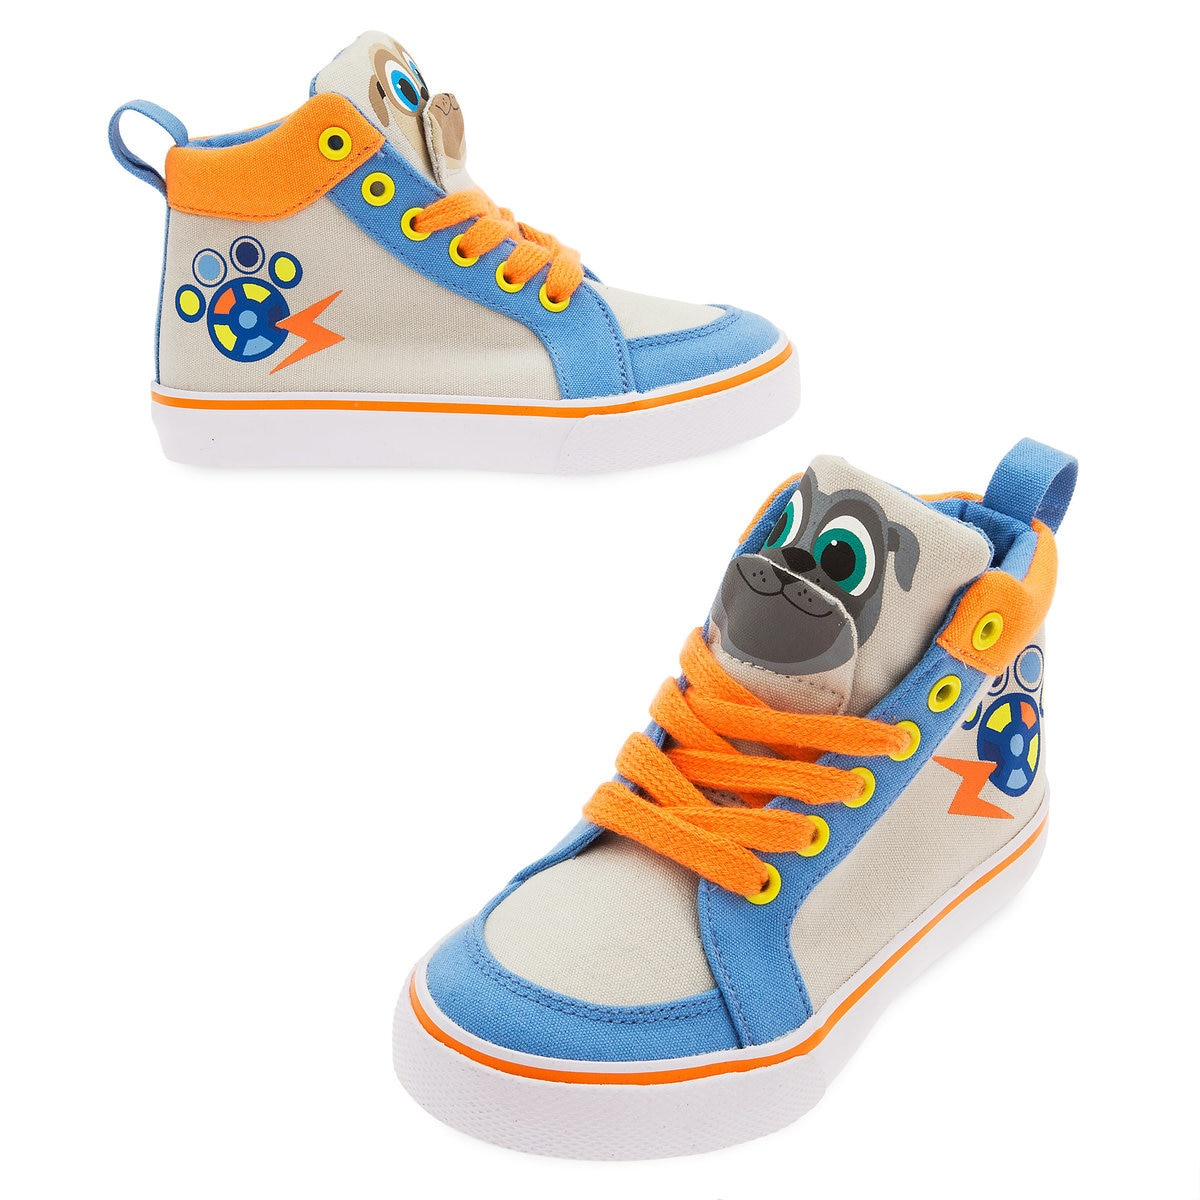 277666ae35 Product Image of Puppy Dog Pals High Top Sneakers for Kids   1